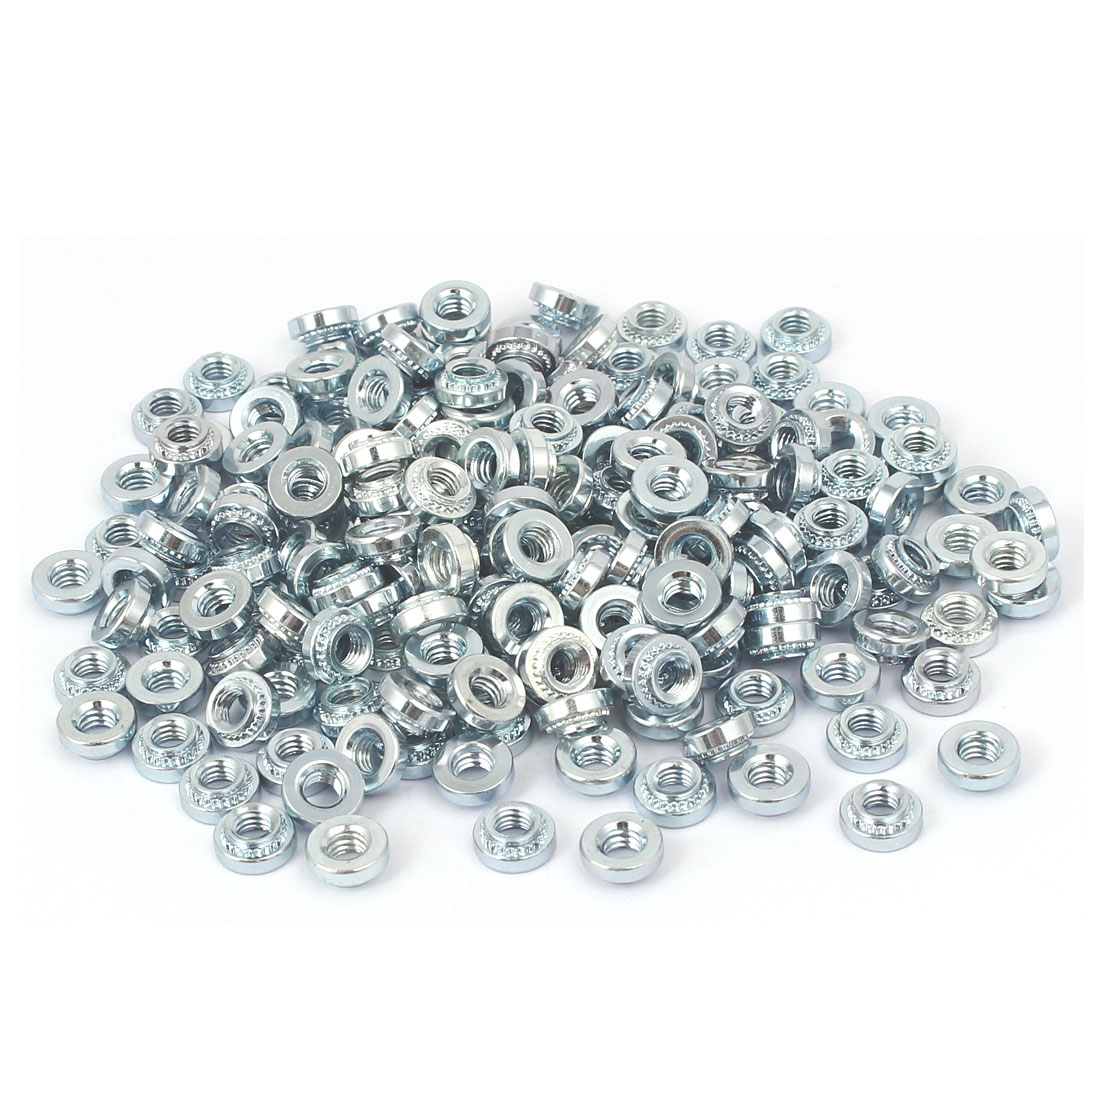 S-M4-2 Carbon Steel Self Clinching Rivet Nut Fastener 200pcs for 1.4mm Thin Plates